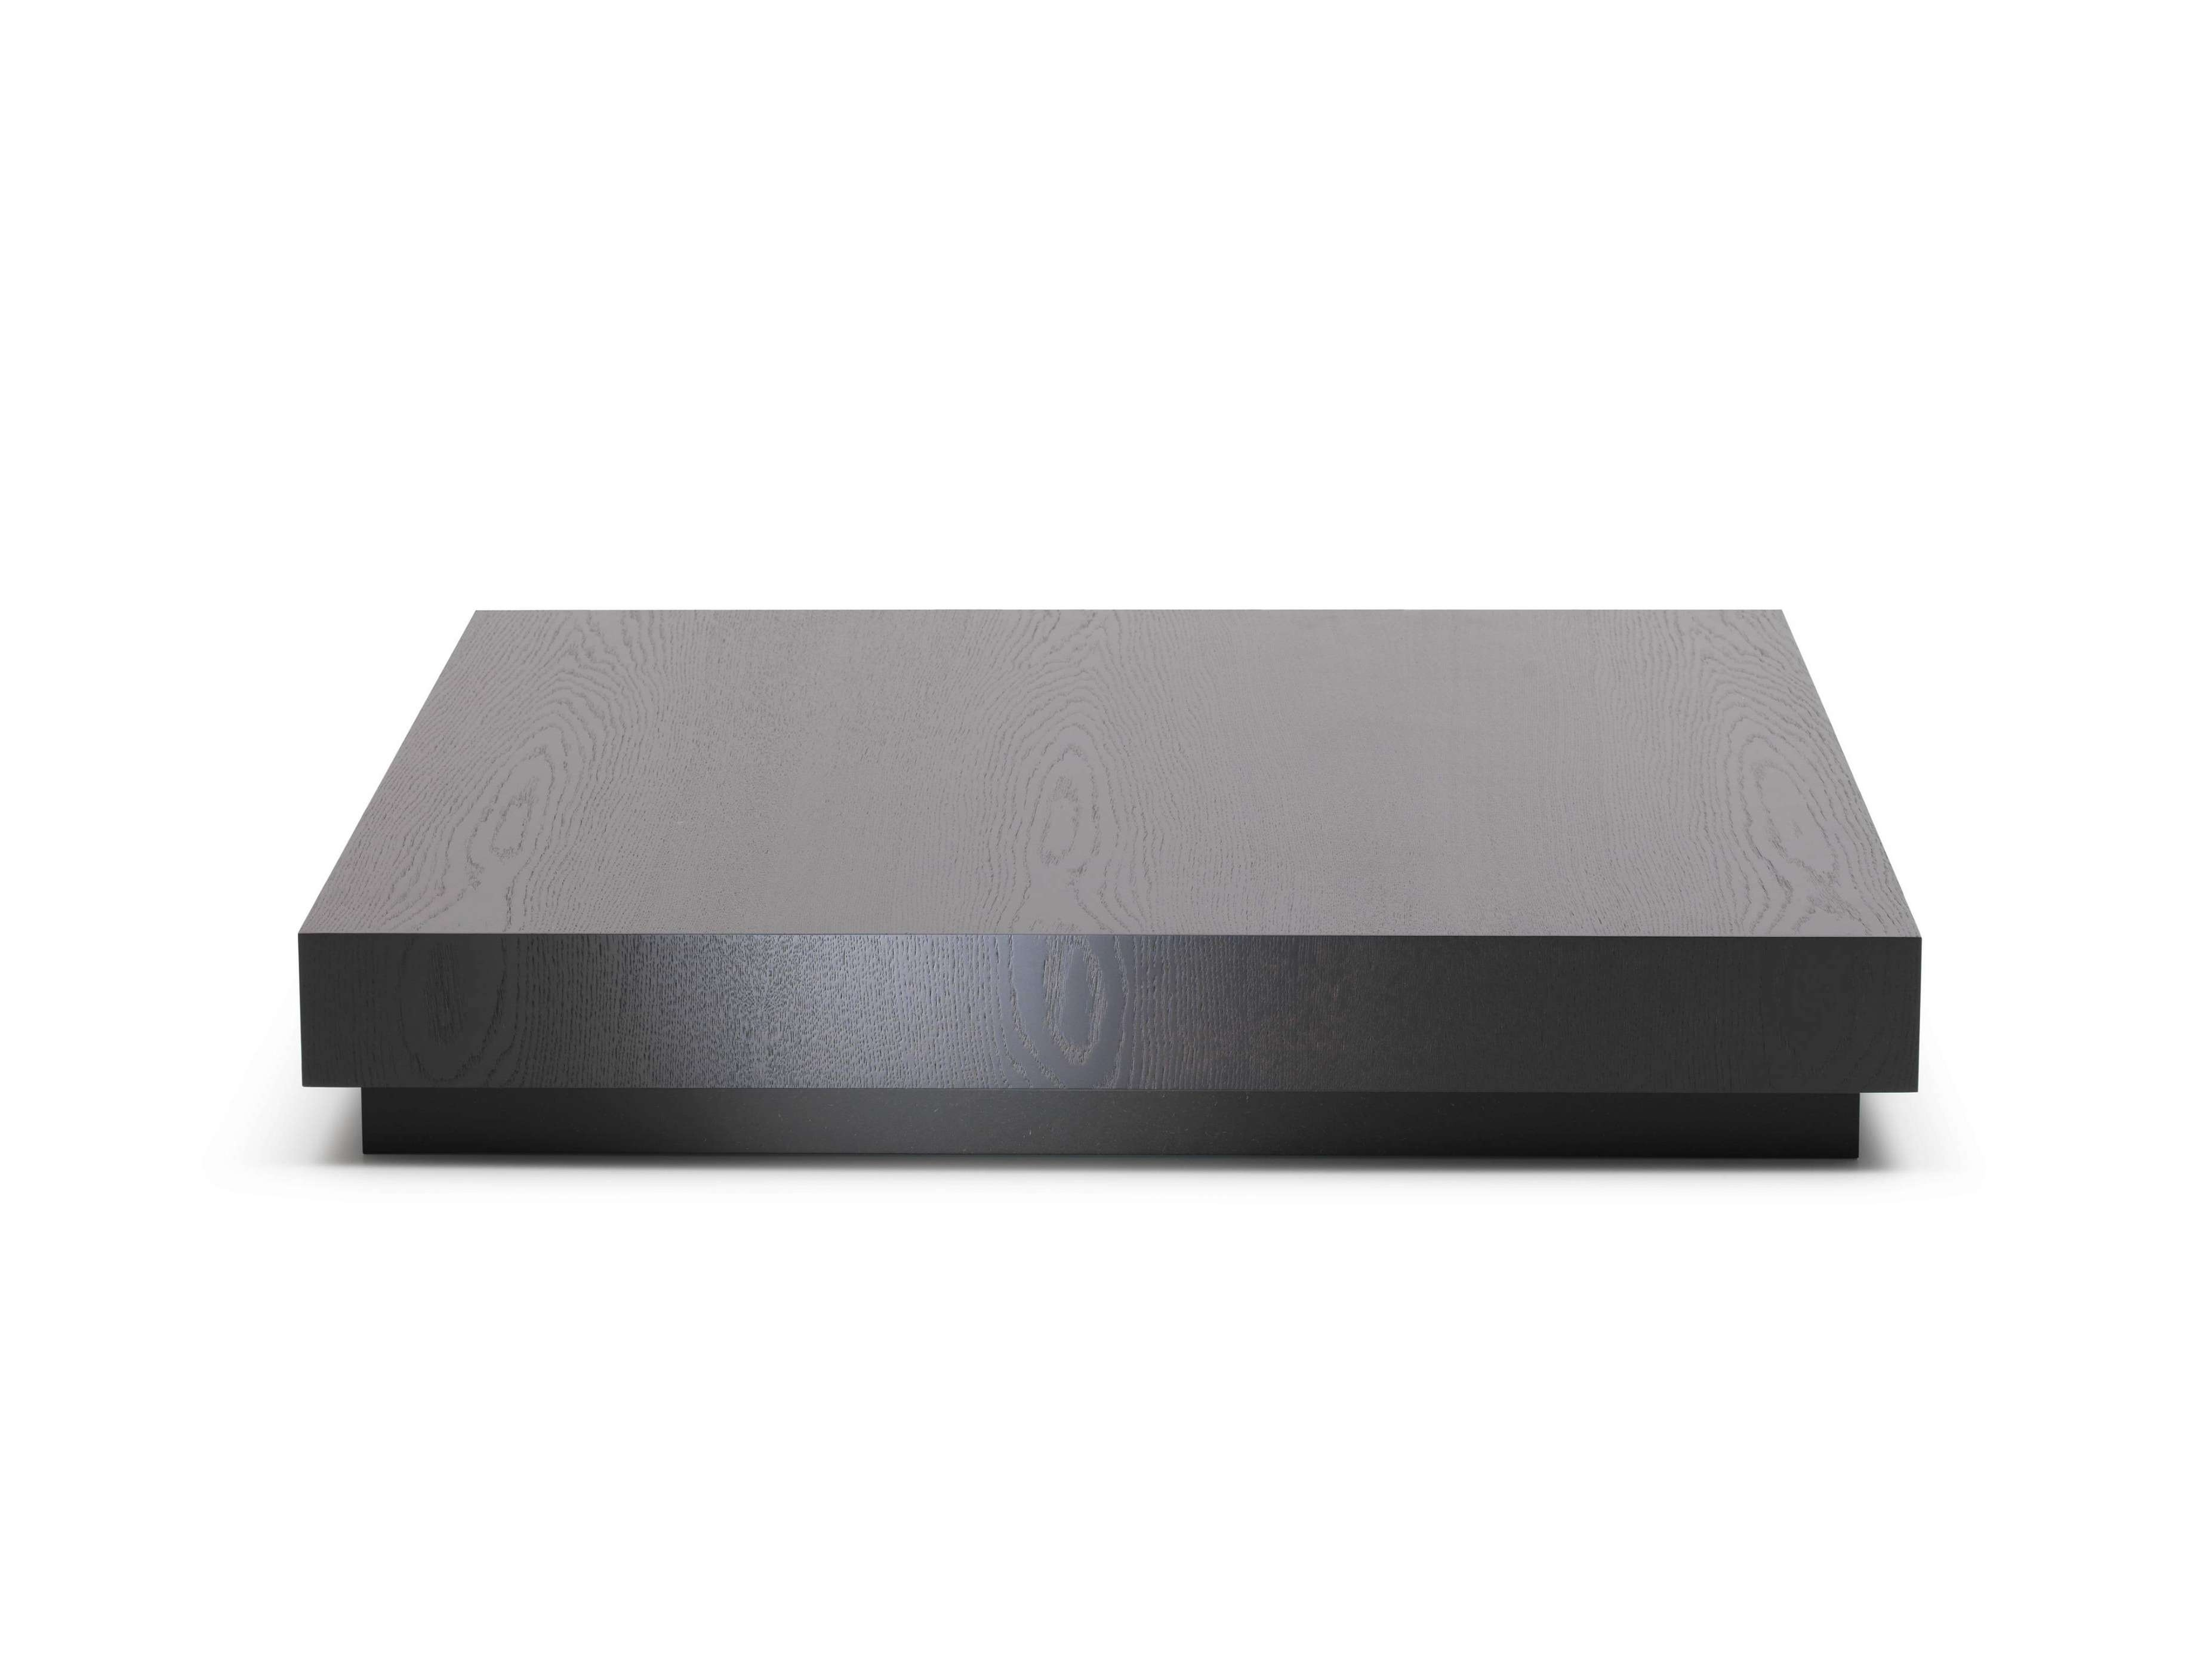 Furniture & Organization: Black Wood Low Square Coffee Tables For Intended For Latest Low Coffee Tables With Storage (View 2 of 20)